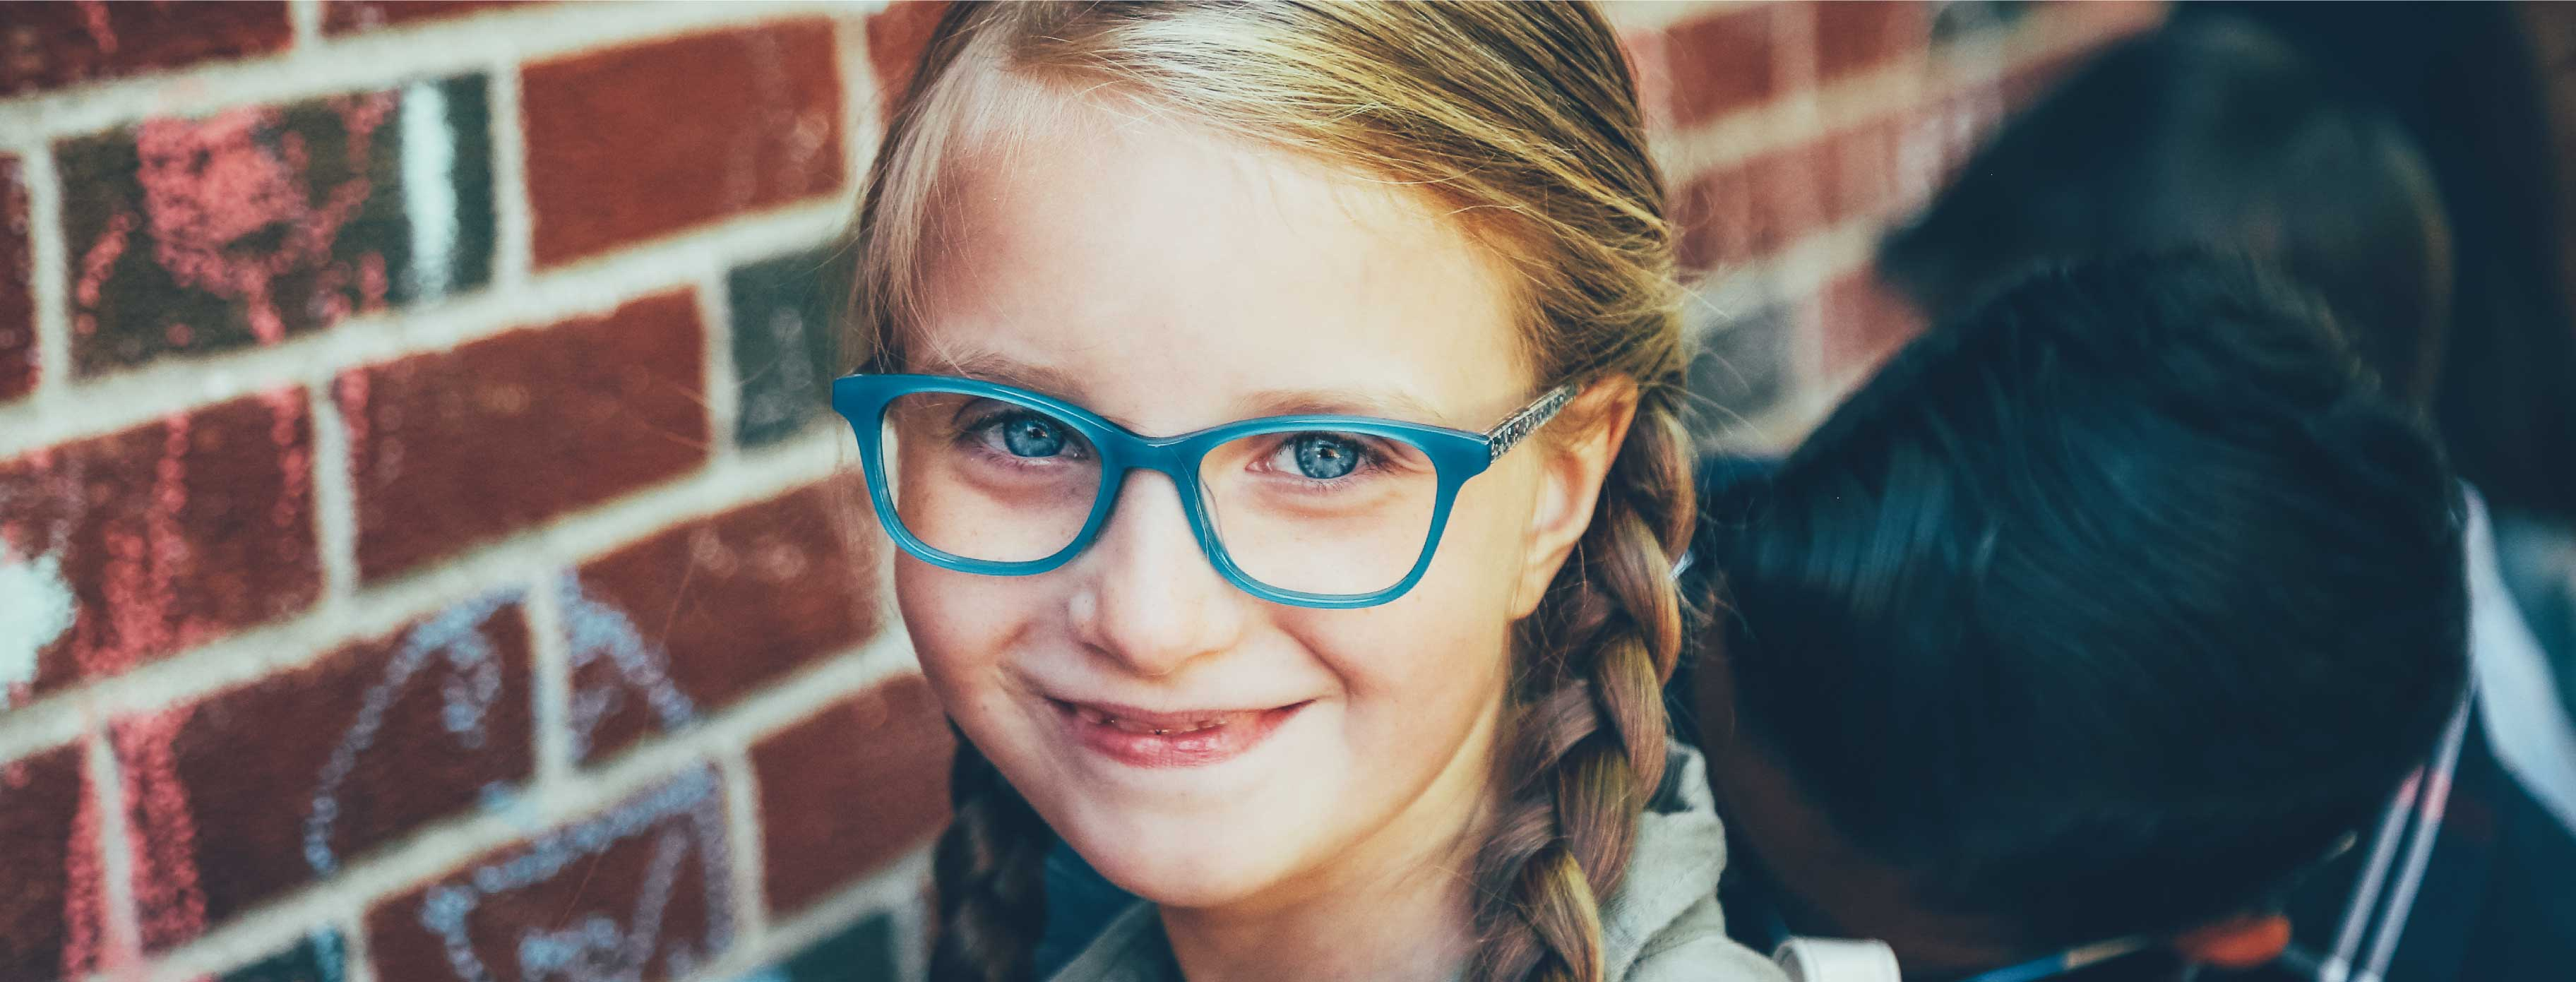 A little girl is in the school yard, she's smiling and wearing glasses